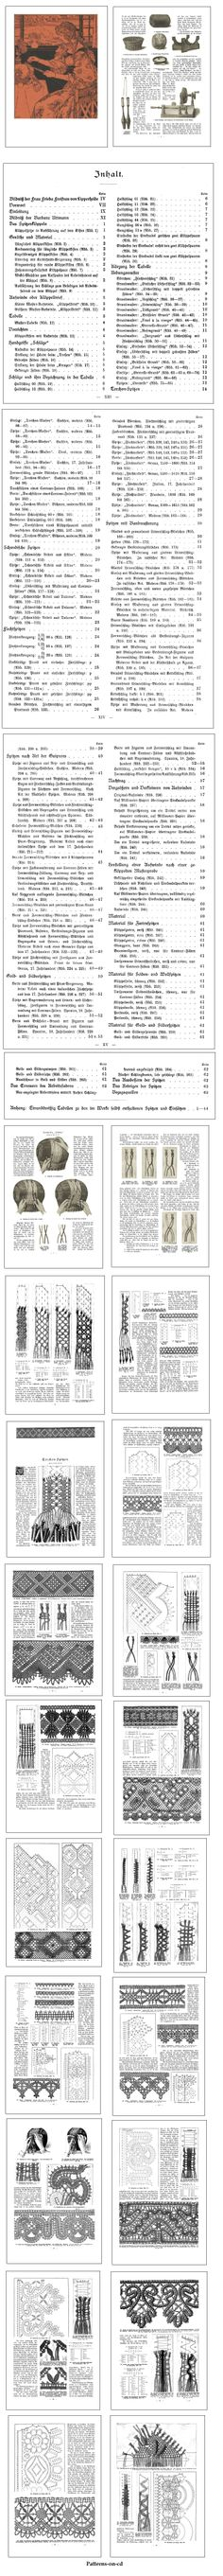 I want!                                                   CD ROM Title:  German Bobbin Lace Making, 1898.     This publication is in German language. Though this is not in English, the impressive illustrations and patterns make it a worthy addition to our selection of bobbin lacemaking related CD titles. Click on the image for more information